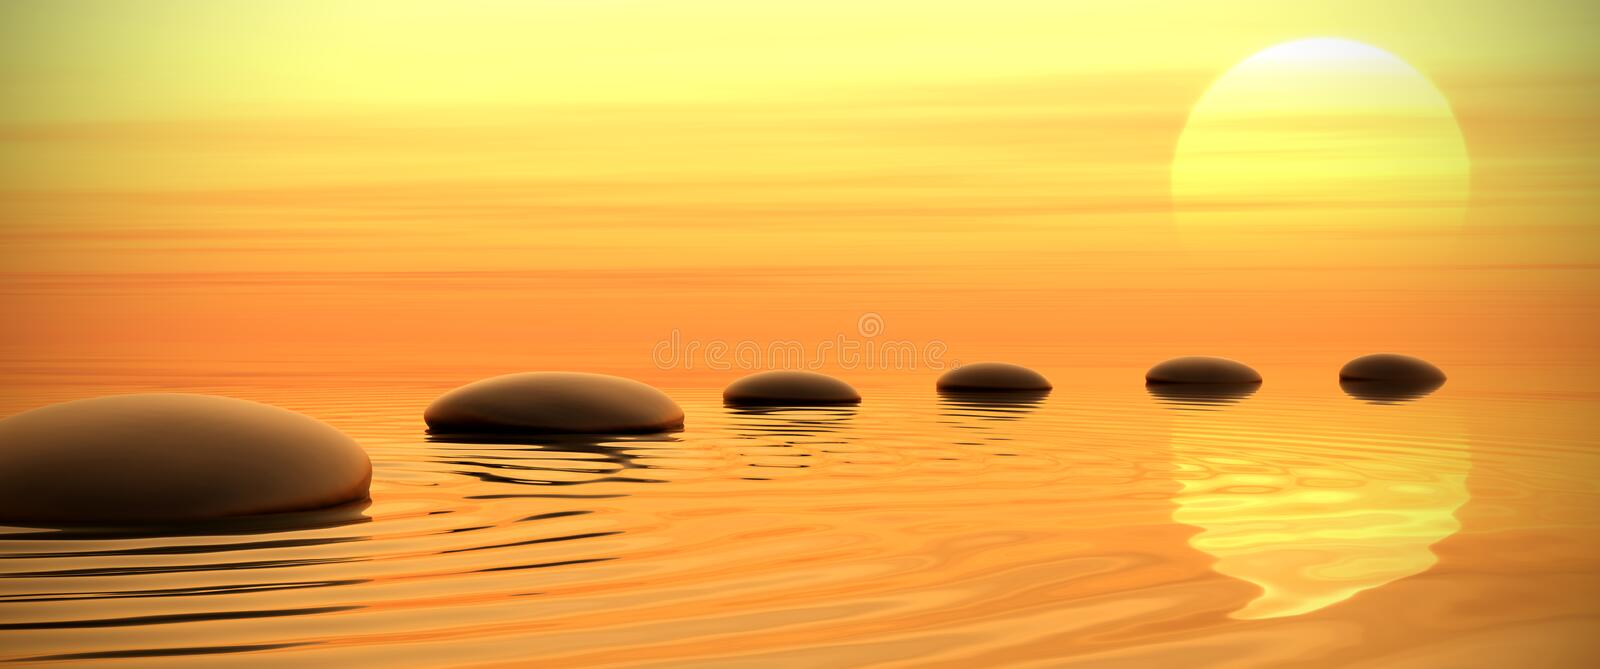 Download Zen Path Of Stones On Sunset In Widescreen Stock Illustration - Image: 26117181